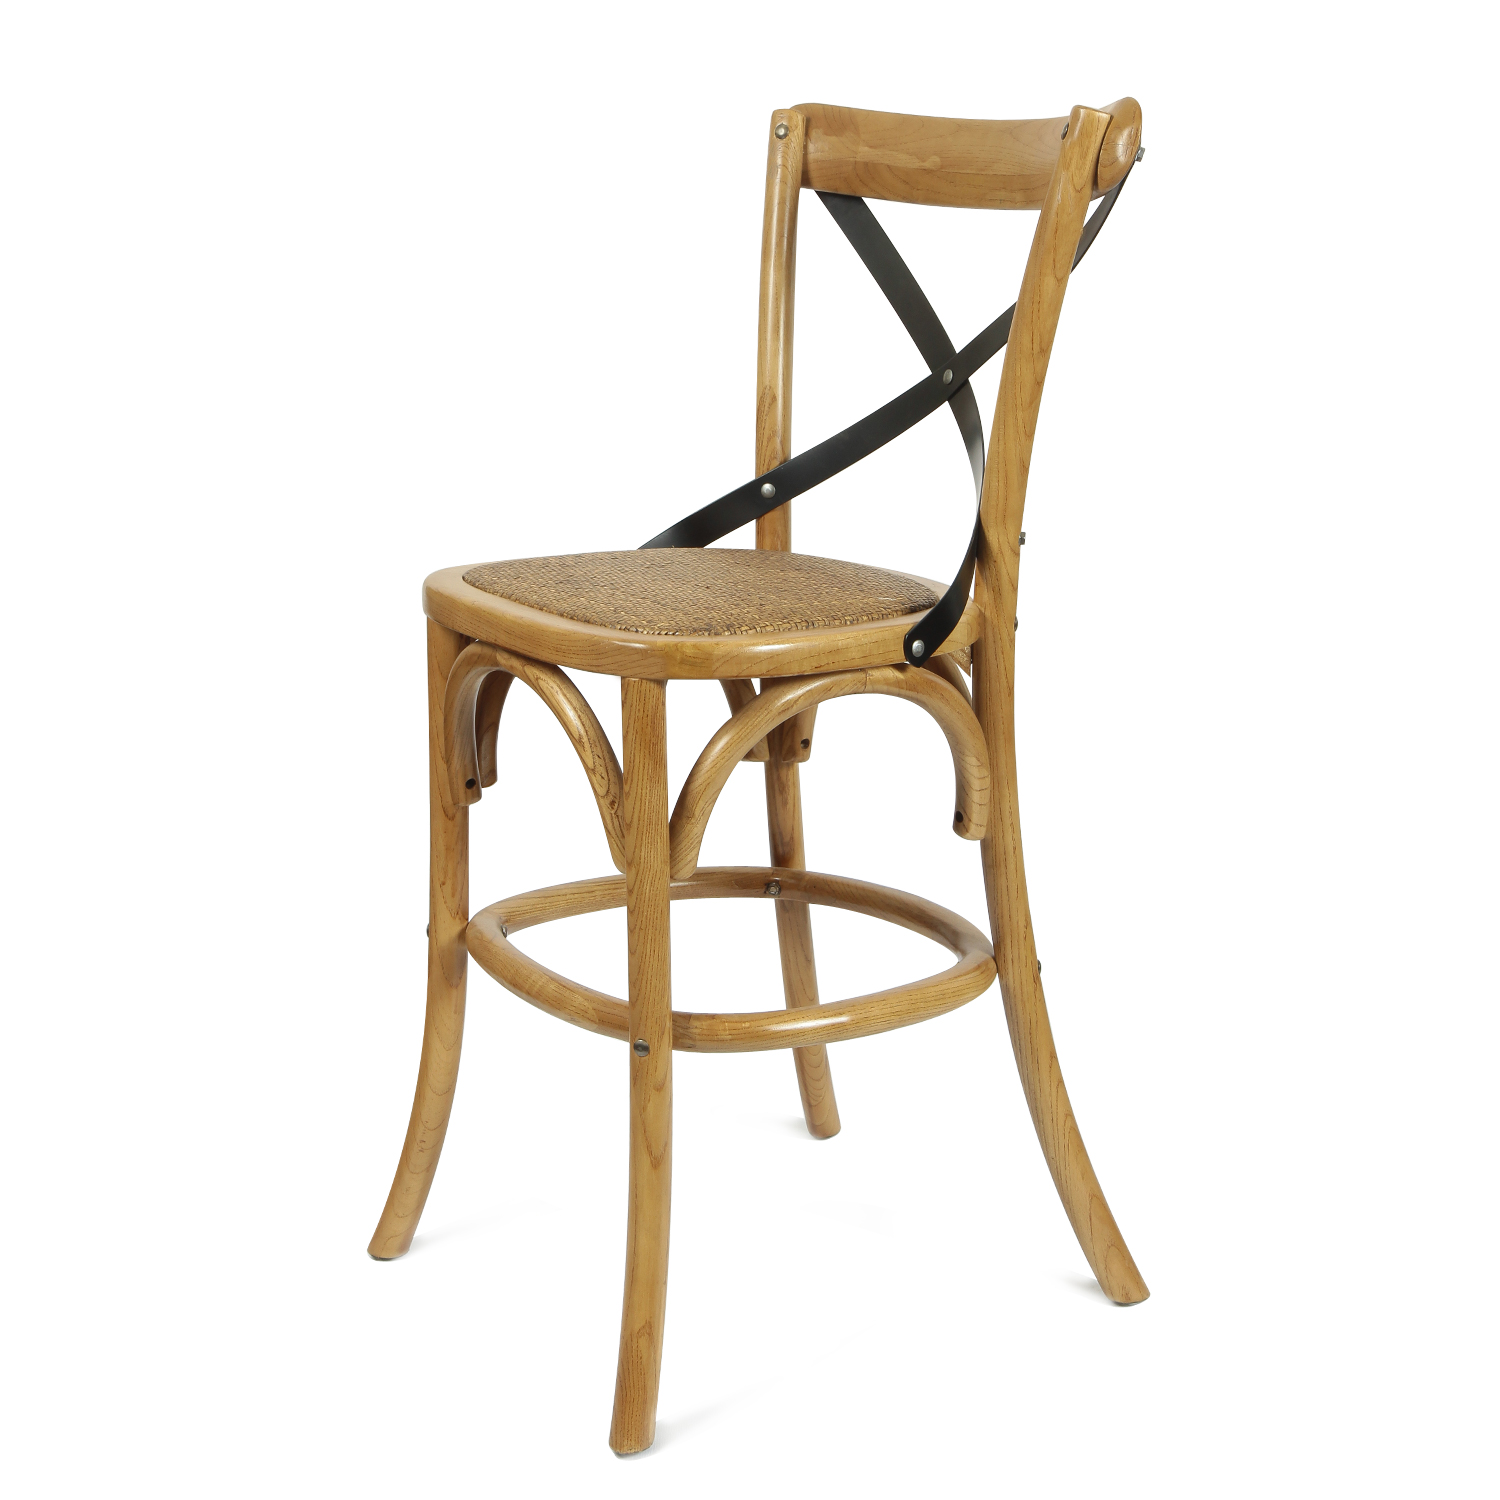 Adeco  CH0006  Elm Wood Rattan Antique Barstool Dining Chair, Home Decor at Sears.com